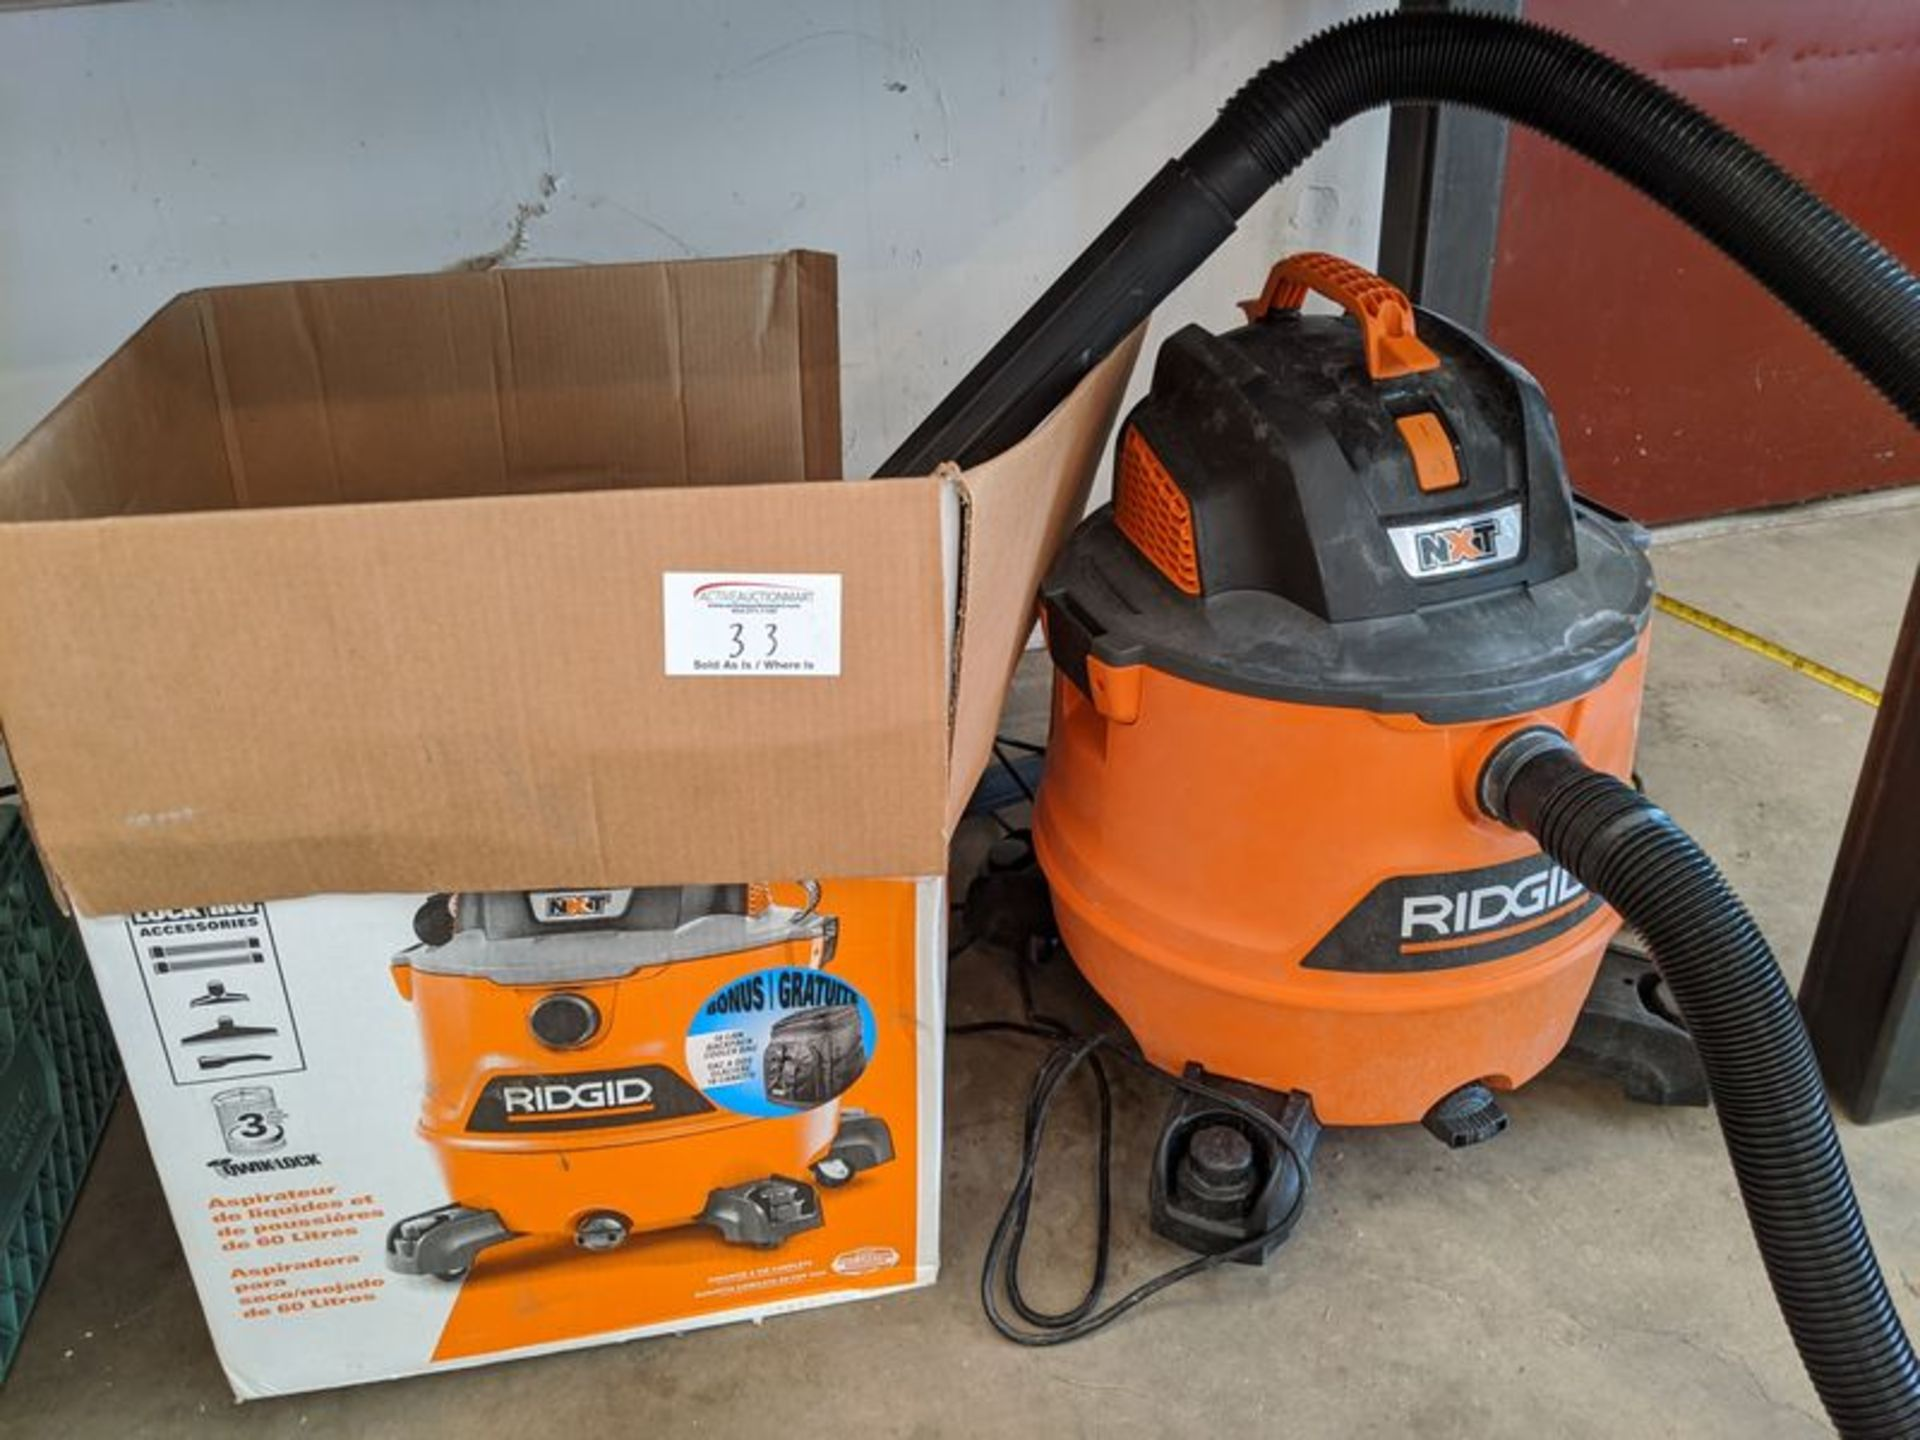 Lot 33 - Rigid Shop Vac